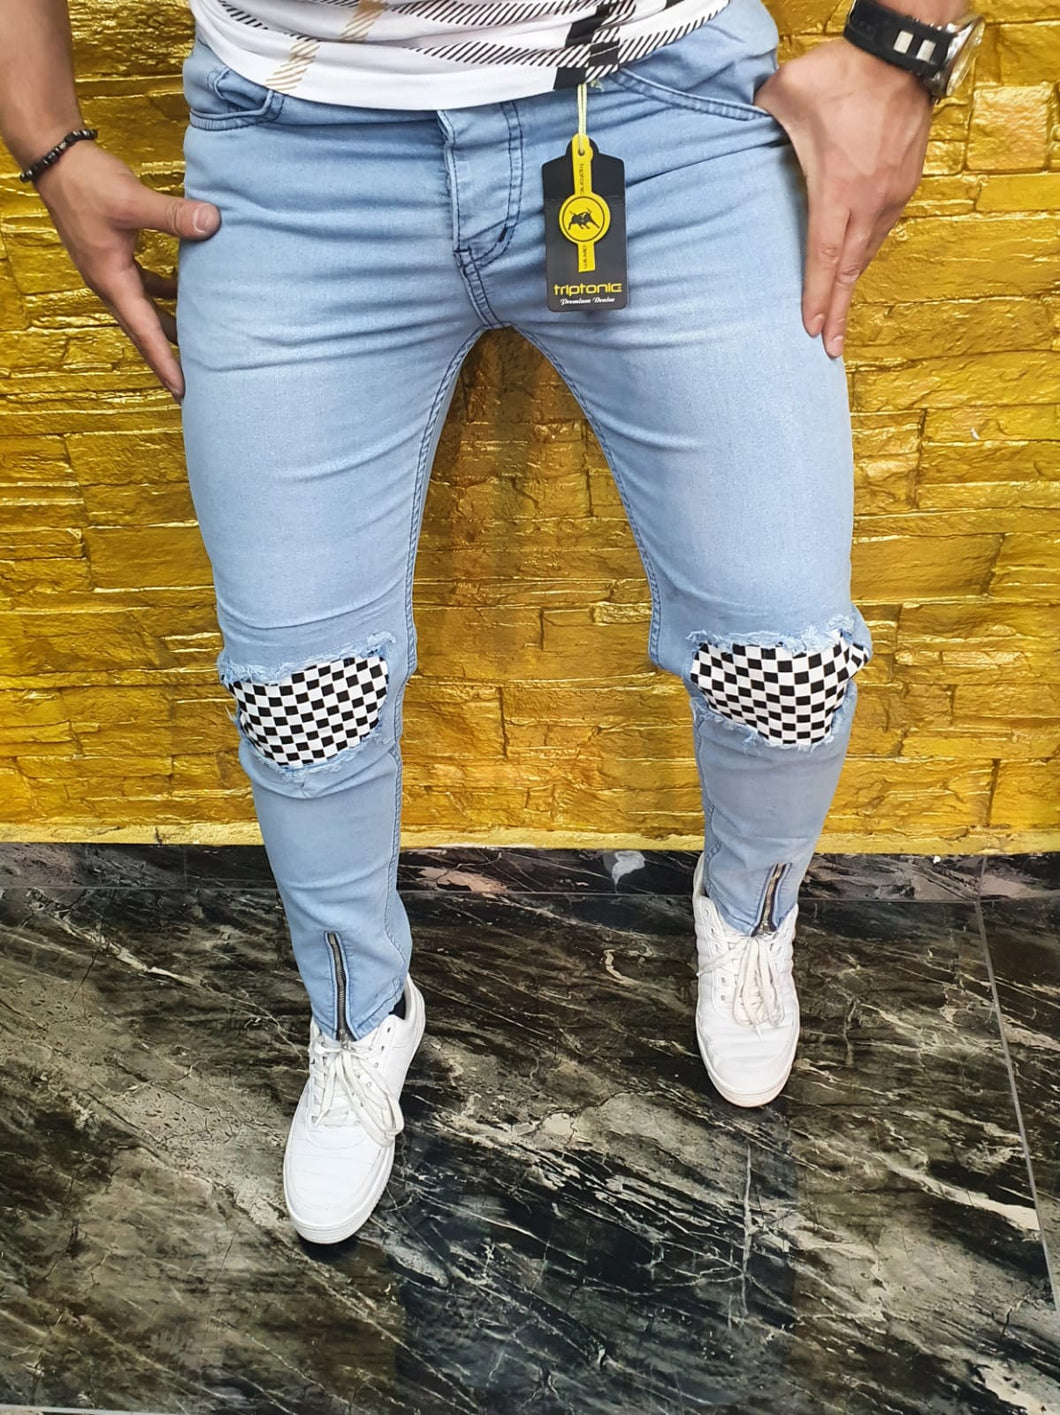 SHUHABAA Fabric Jeans for Men - Light Blue with Checkered Pockets